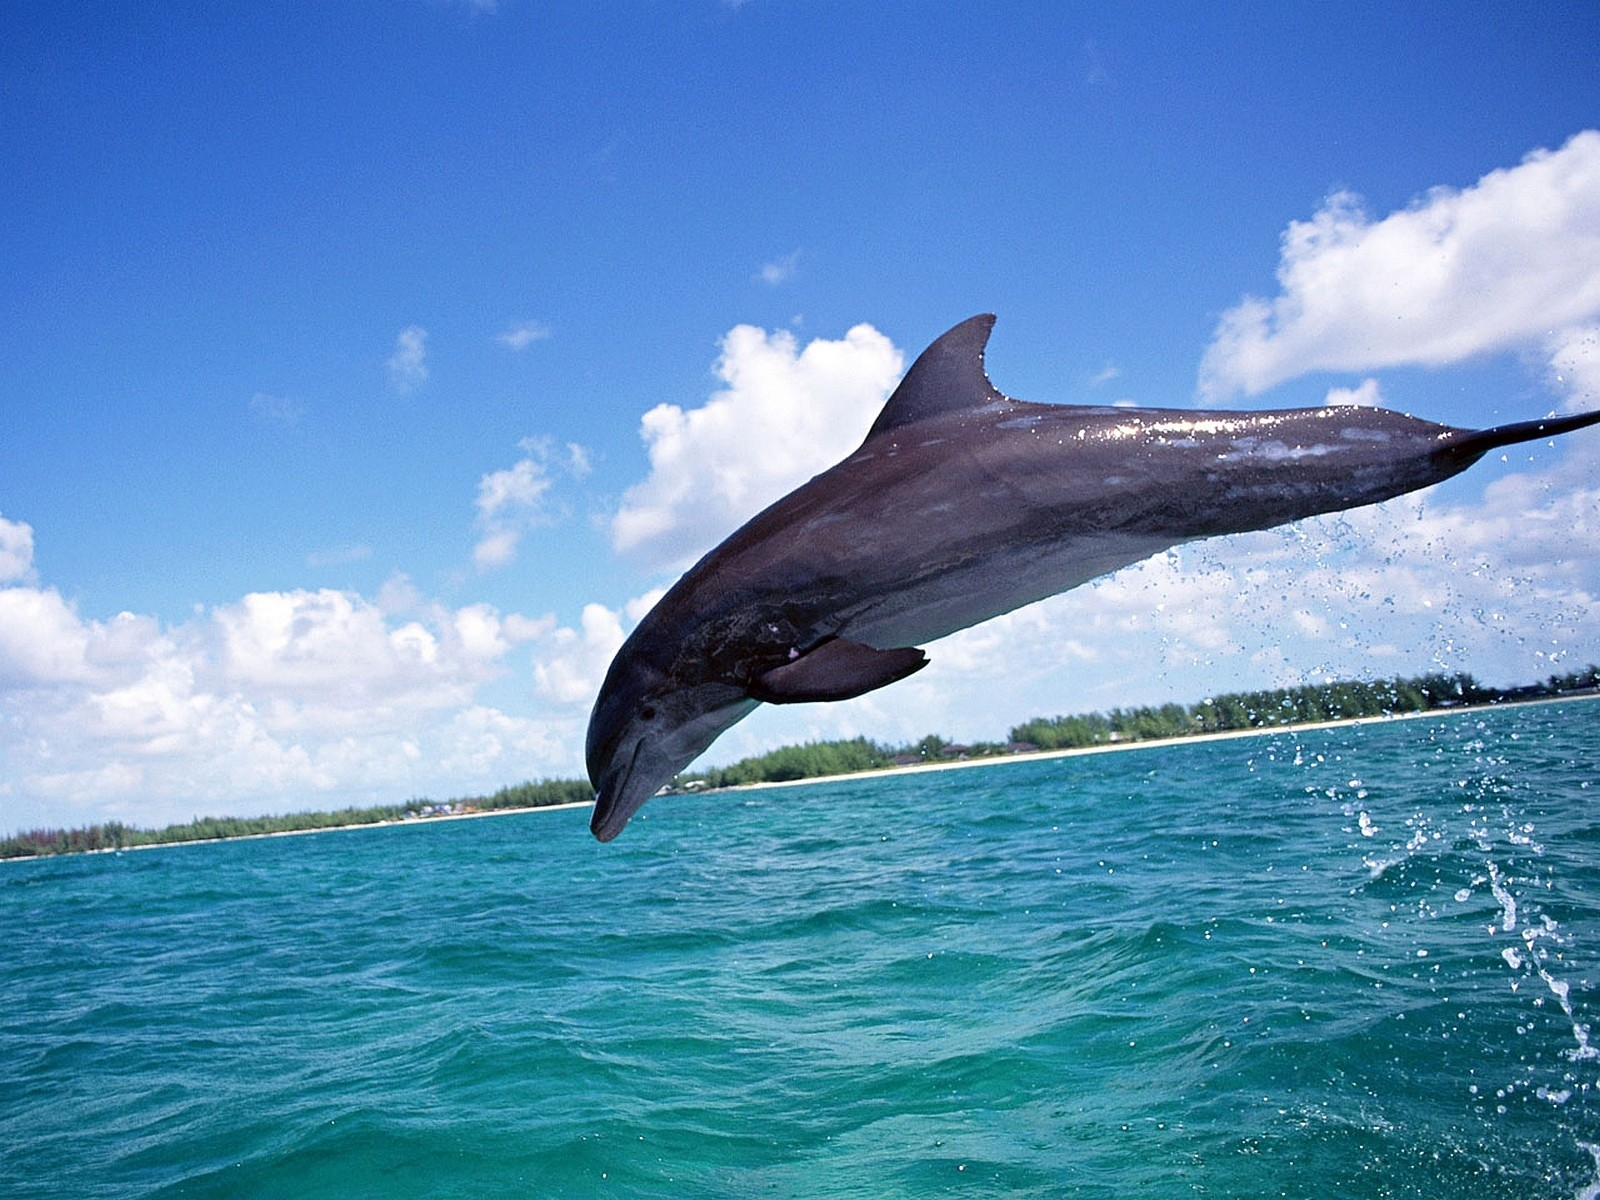 6122 download wallpaper Animals, Dolfins, Sea, Fishes screensavers and pictures for free